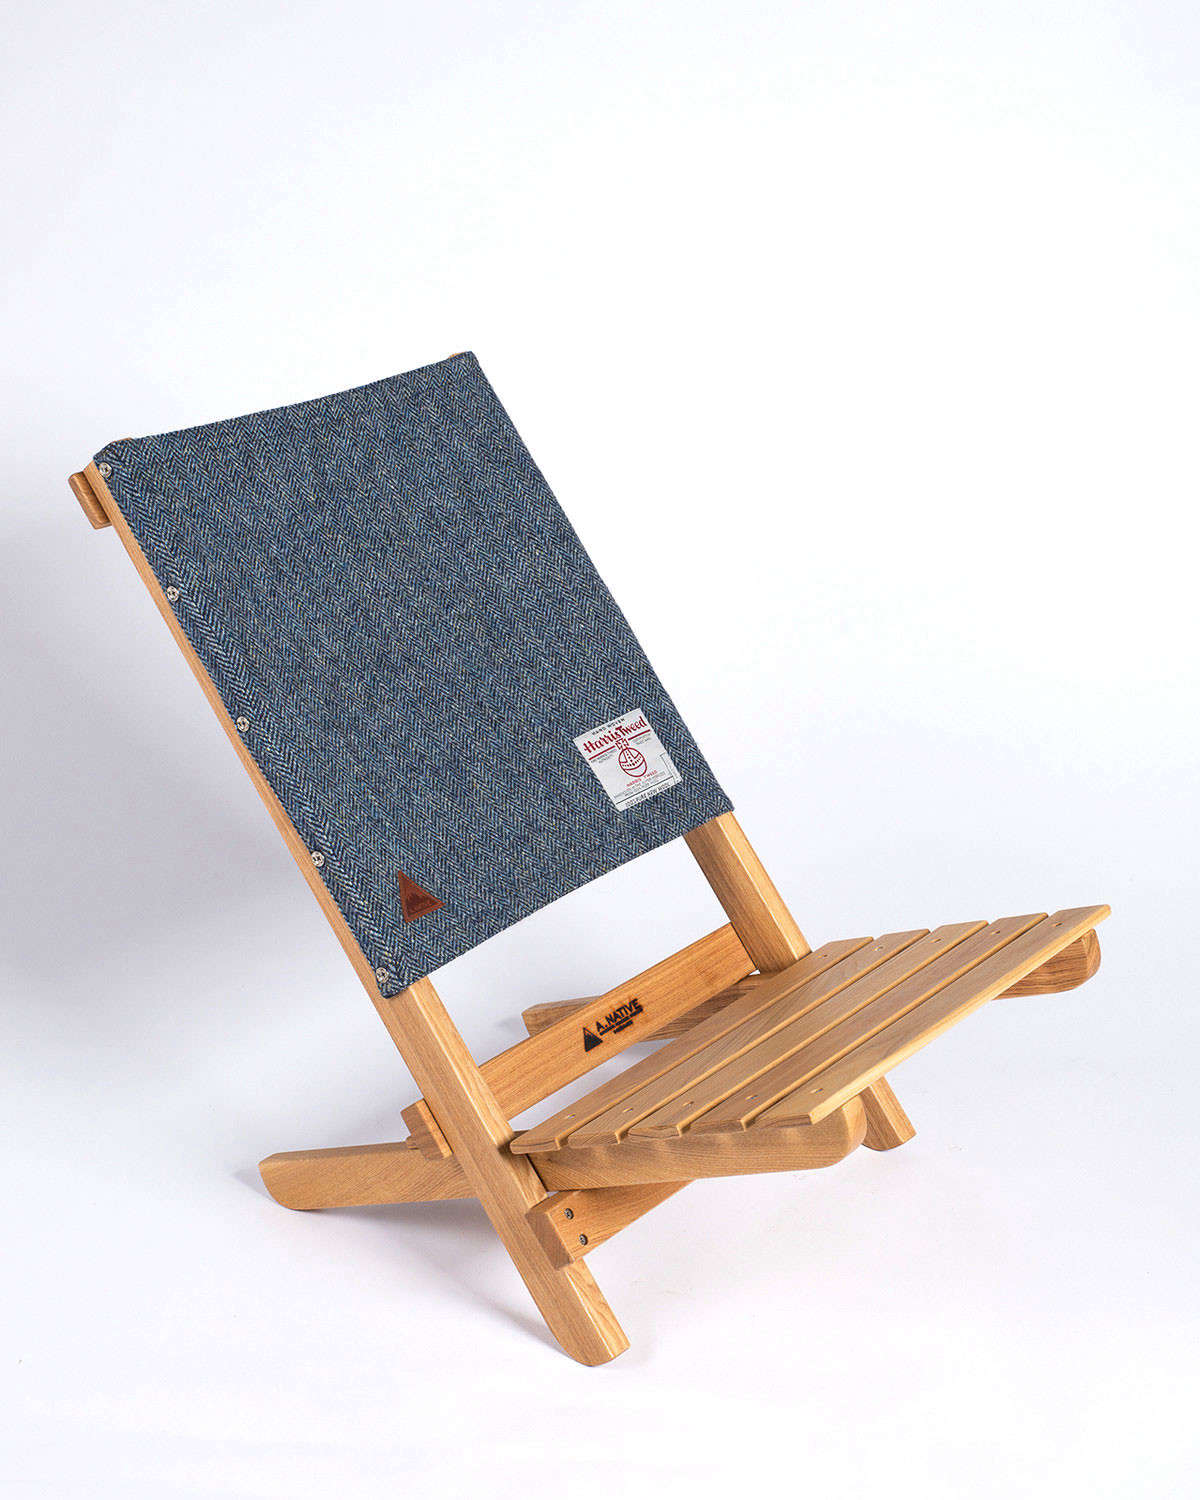 a.nature tweed chair remodelista 10 9